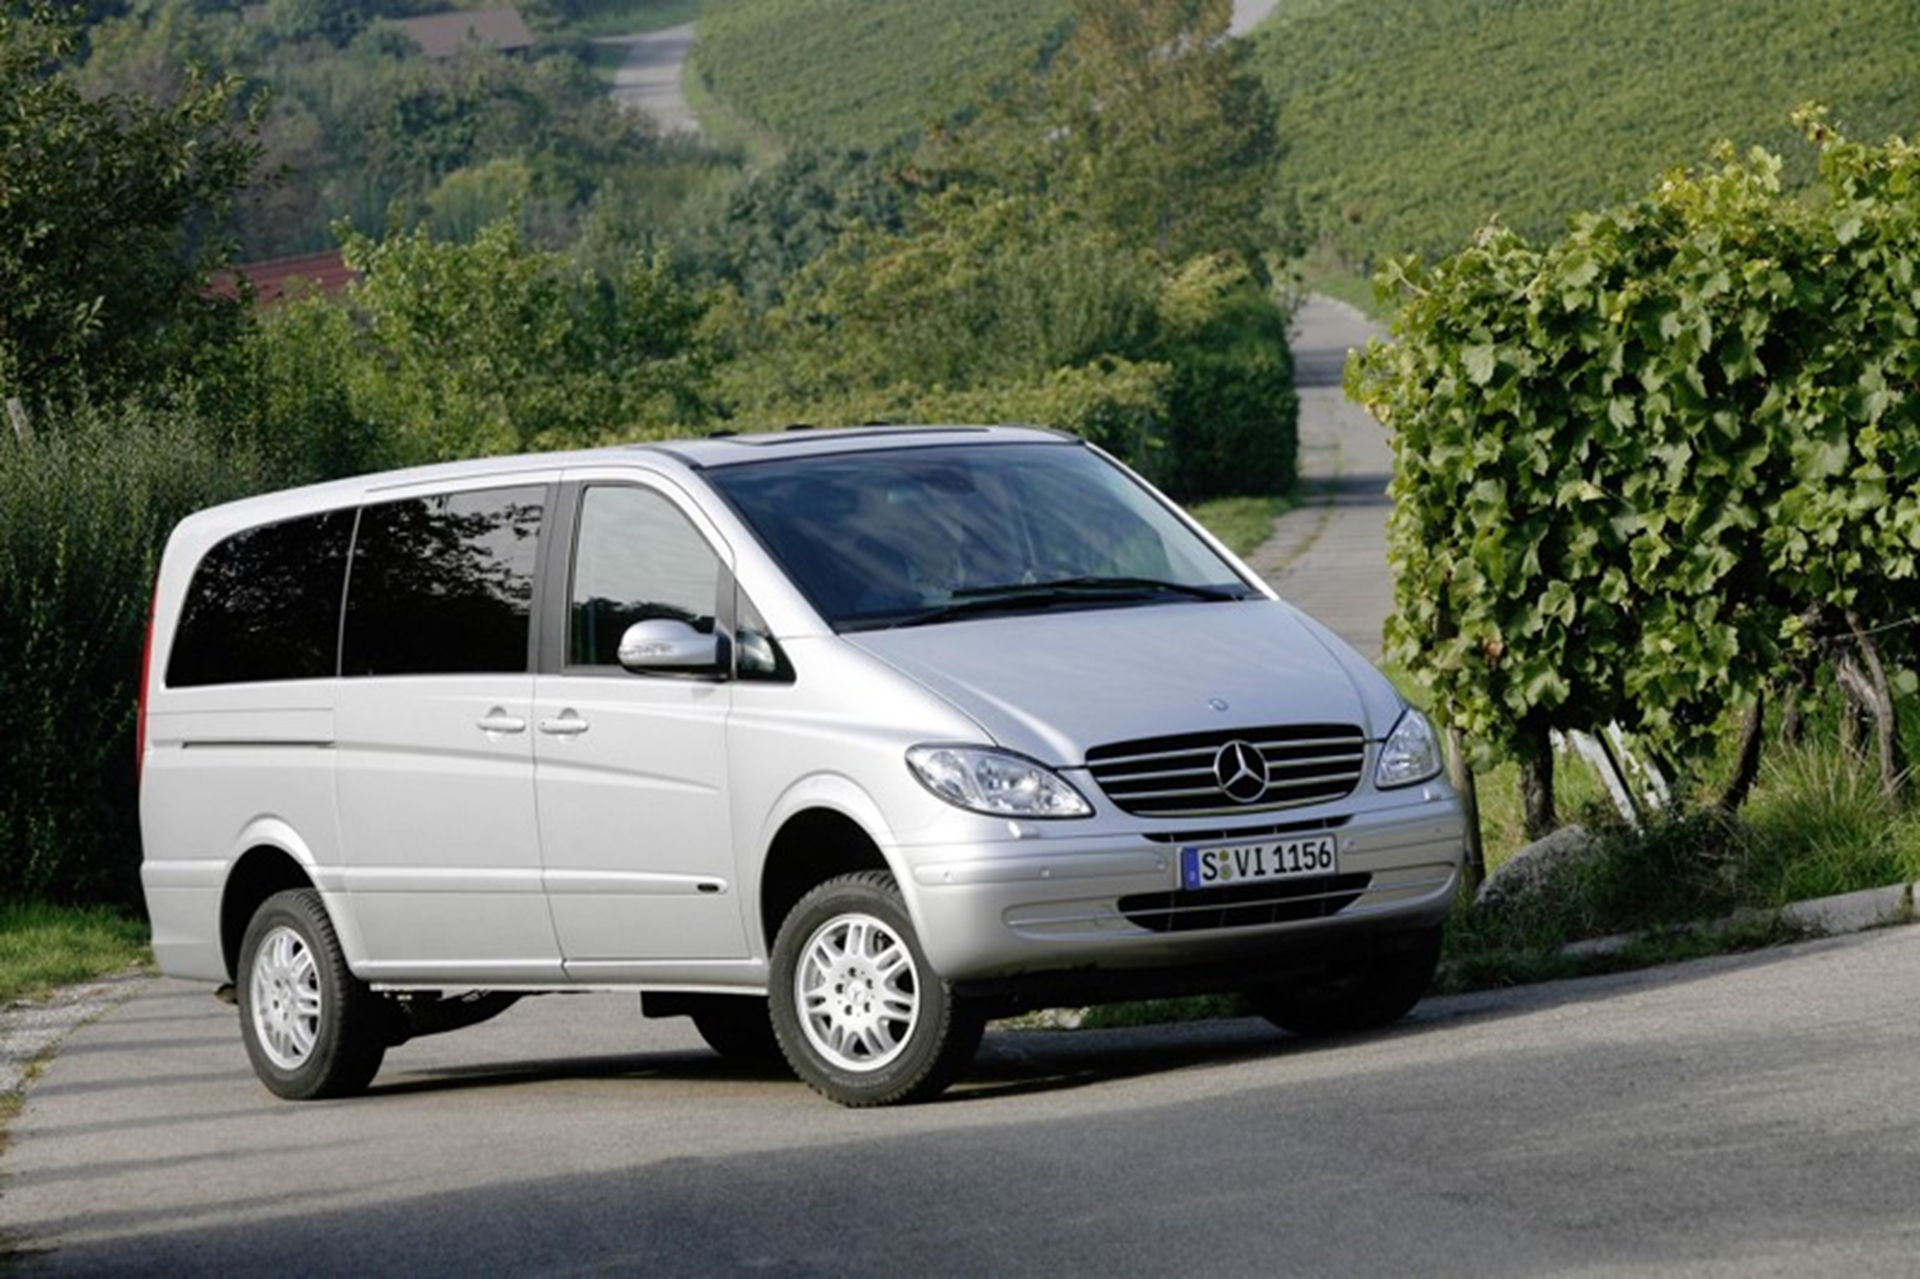 Mercedes benz commercial vehicles star at johannesburg for Mercedes benz commercial